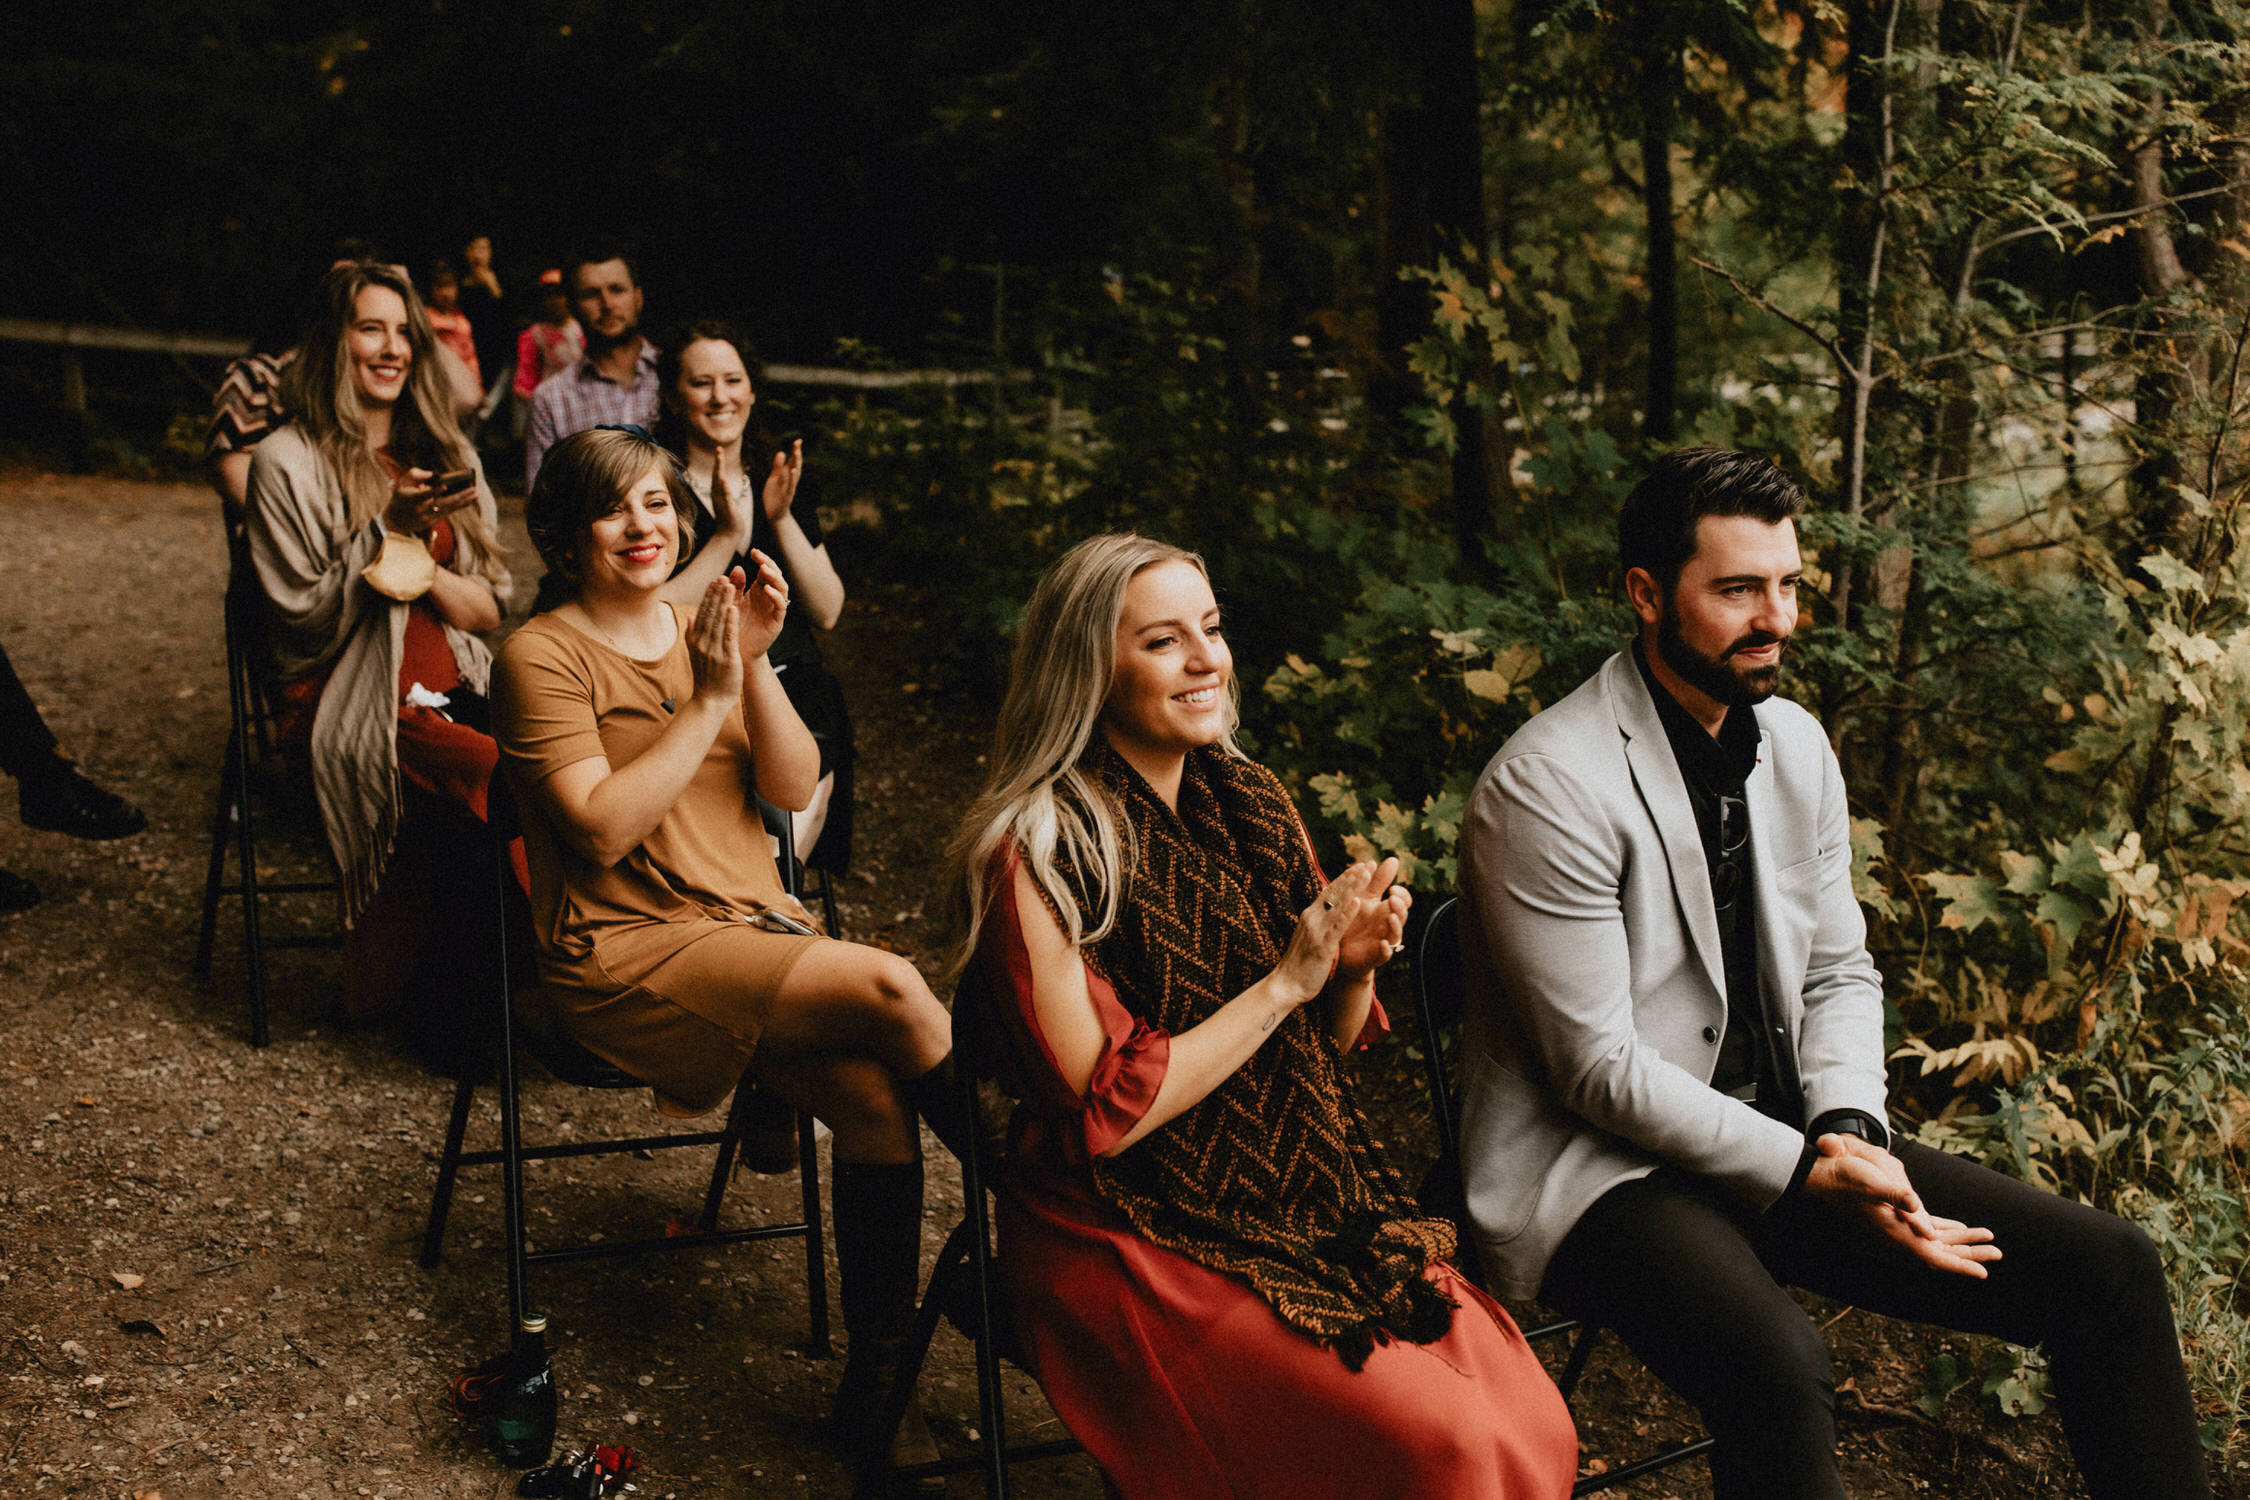 Wedding guests smile and clap - Huron Natural Area Micro Wedding Kitchener, Ontario